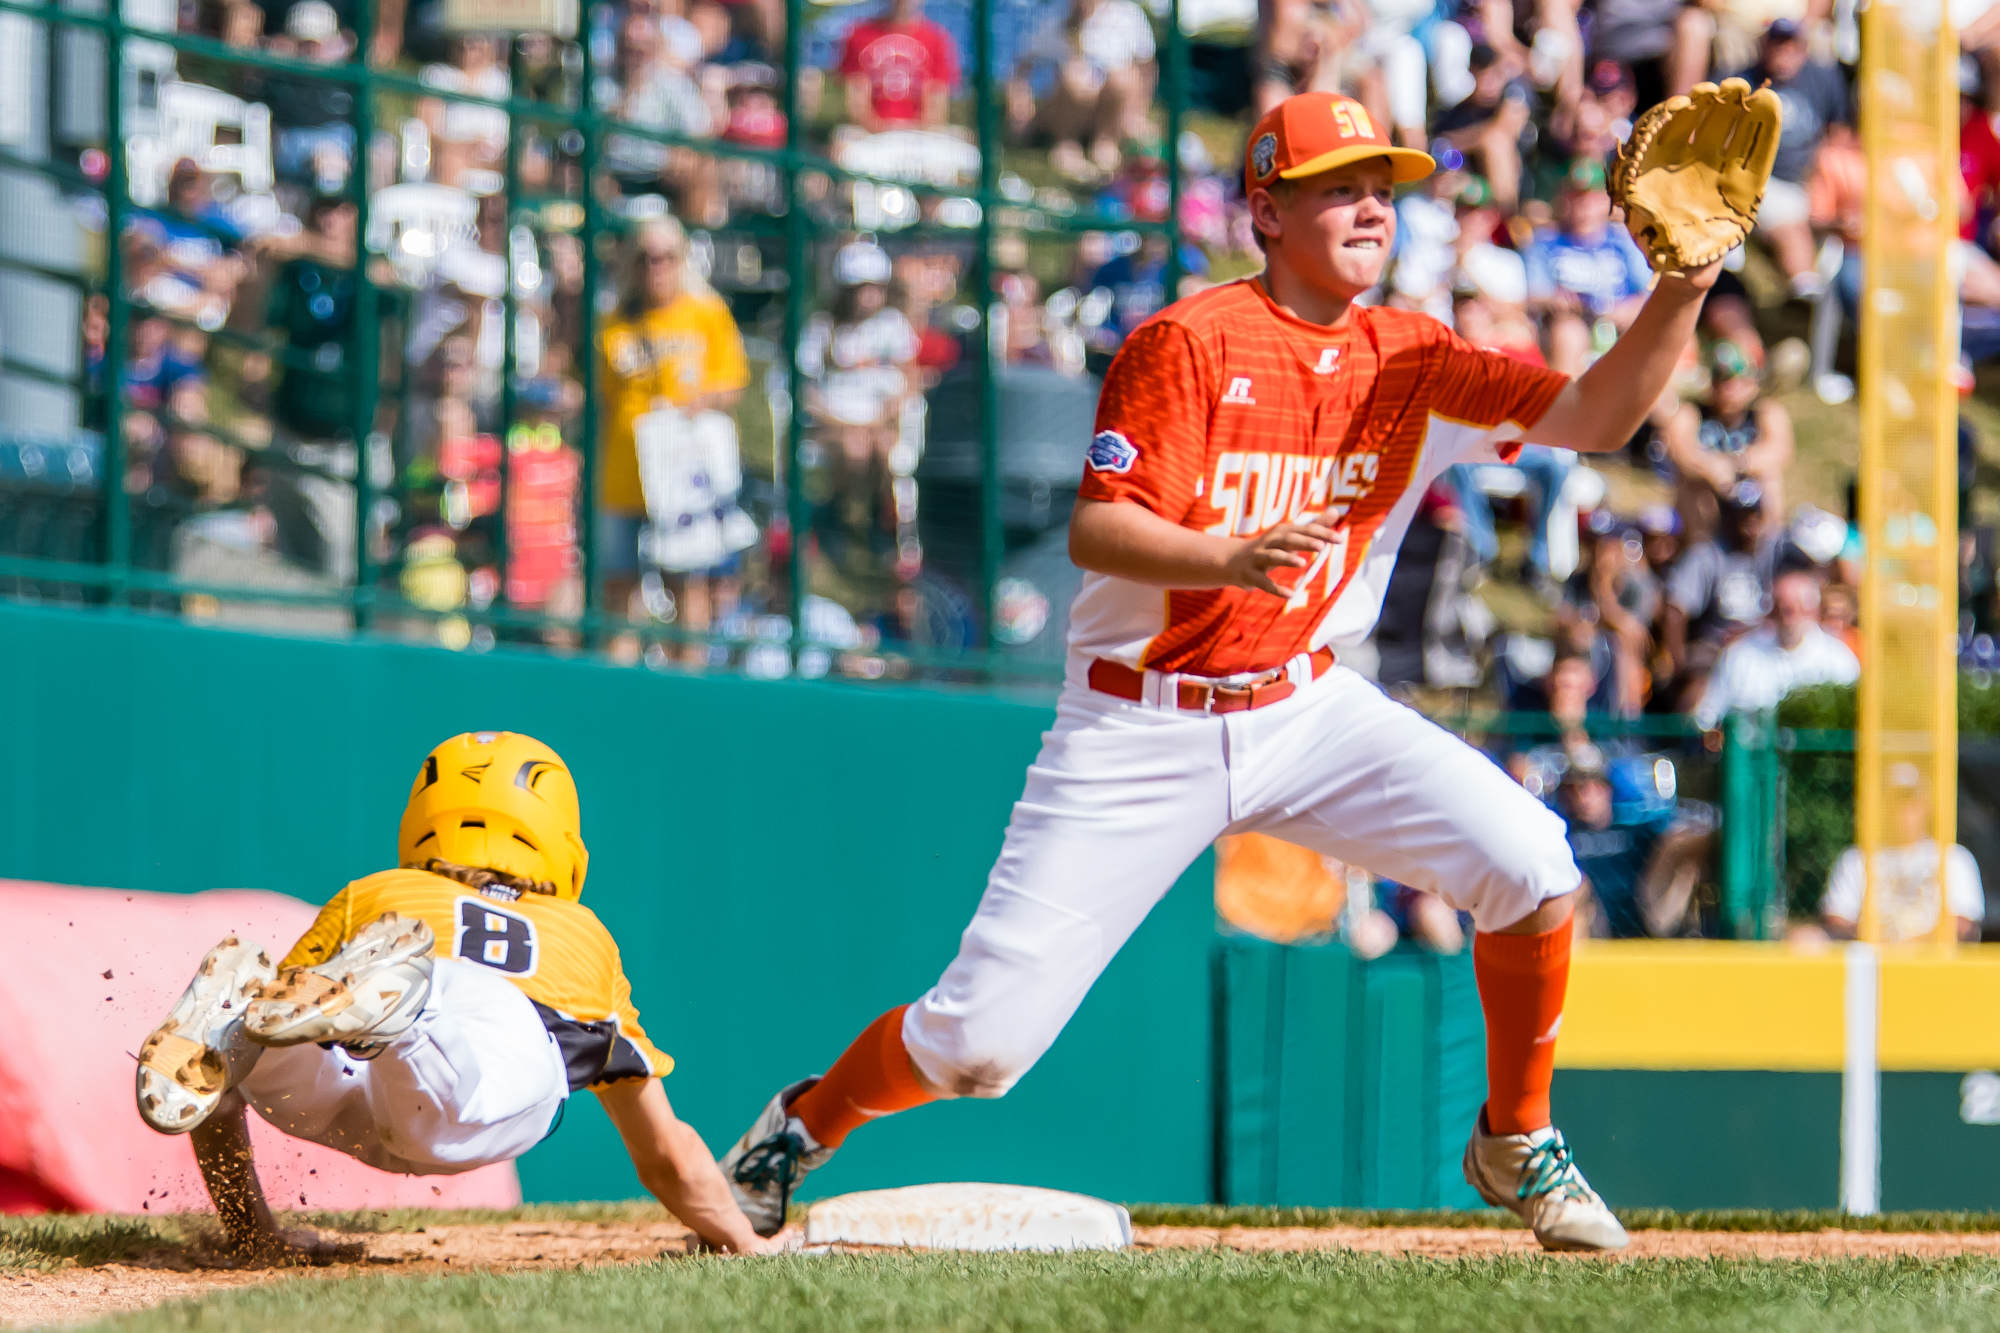 LLWS Championship Weekend - Southeast-52.jpg